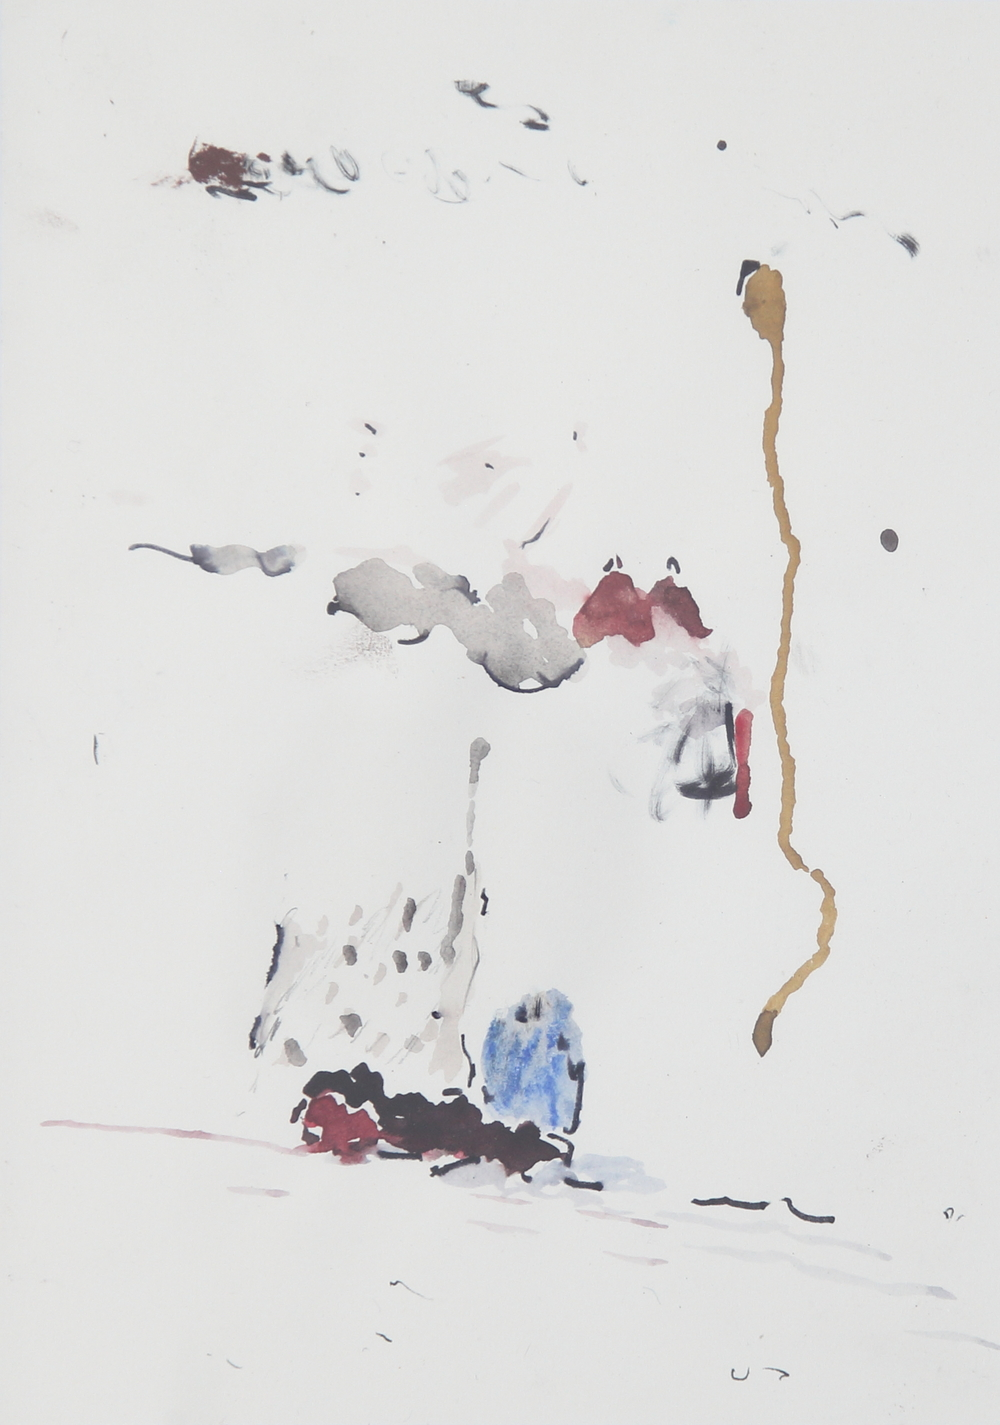 Shen Han 沈翰 No title, 2016 Watercolor on paper 14.5x21 cm